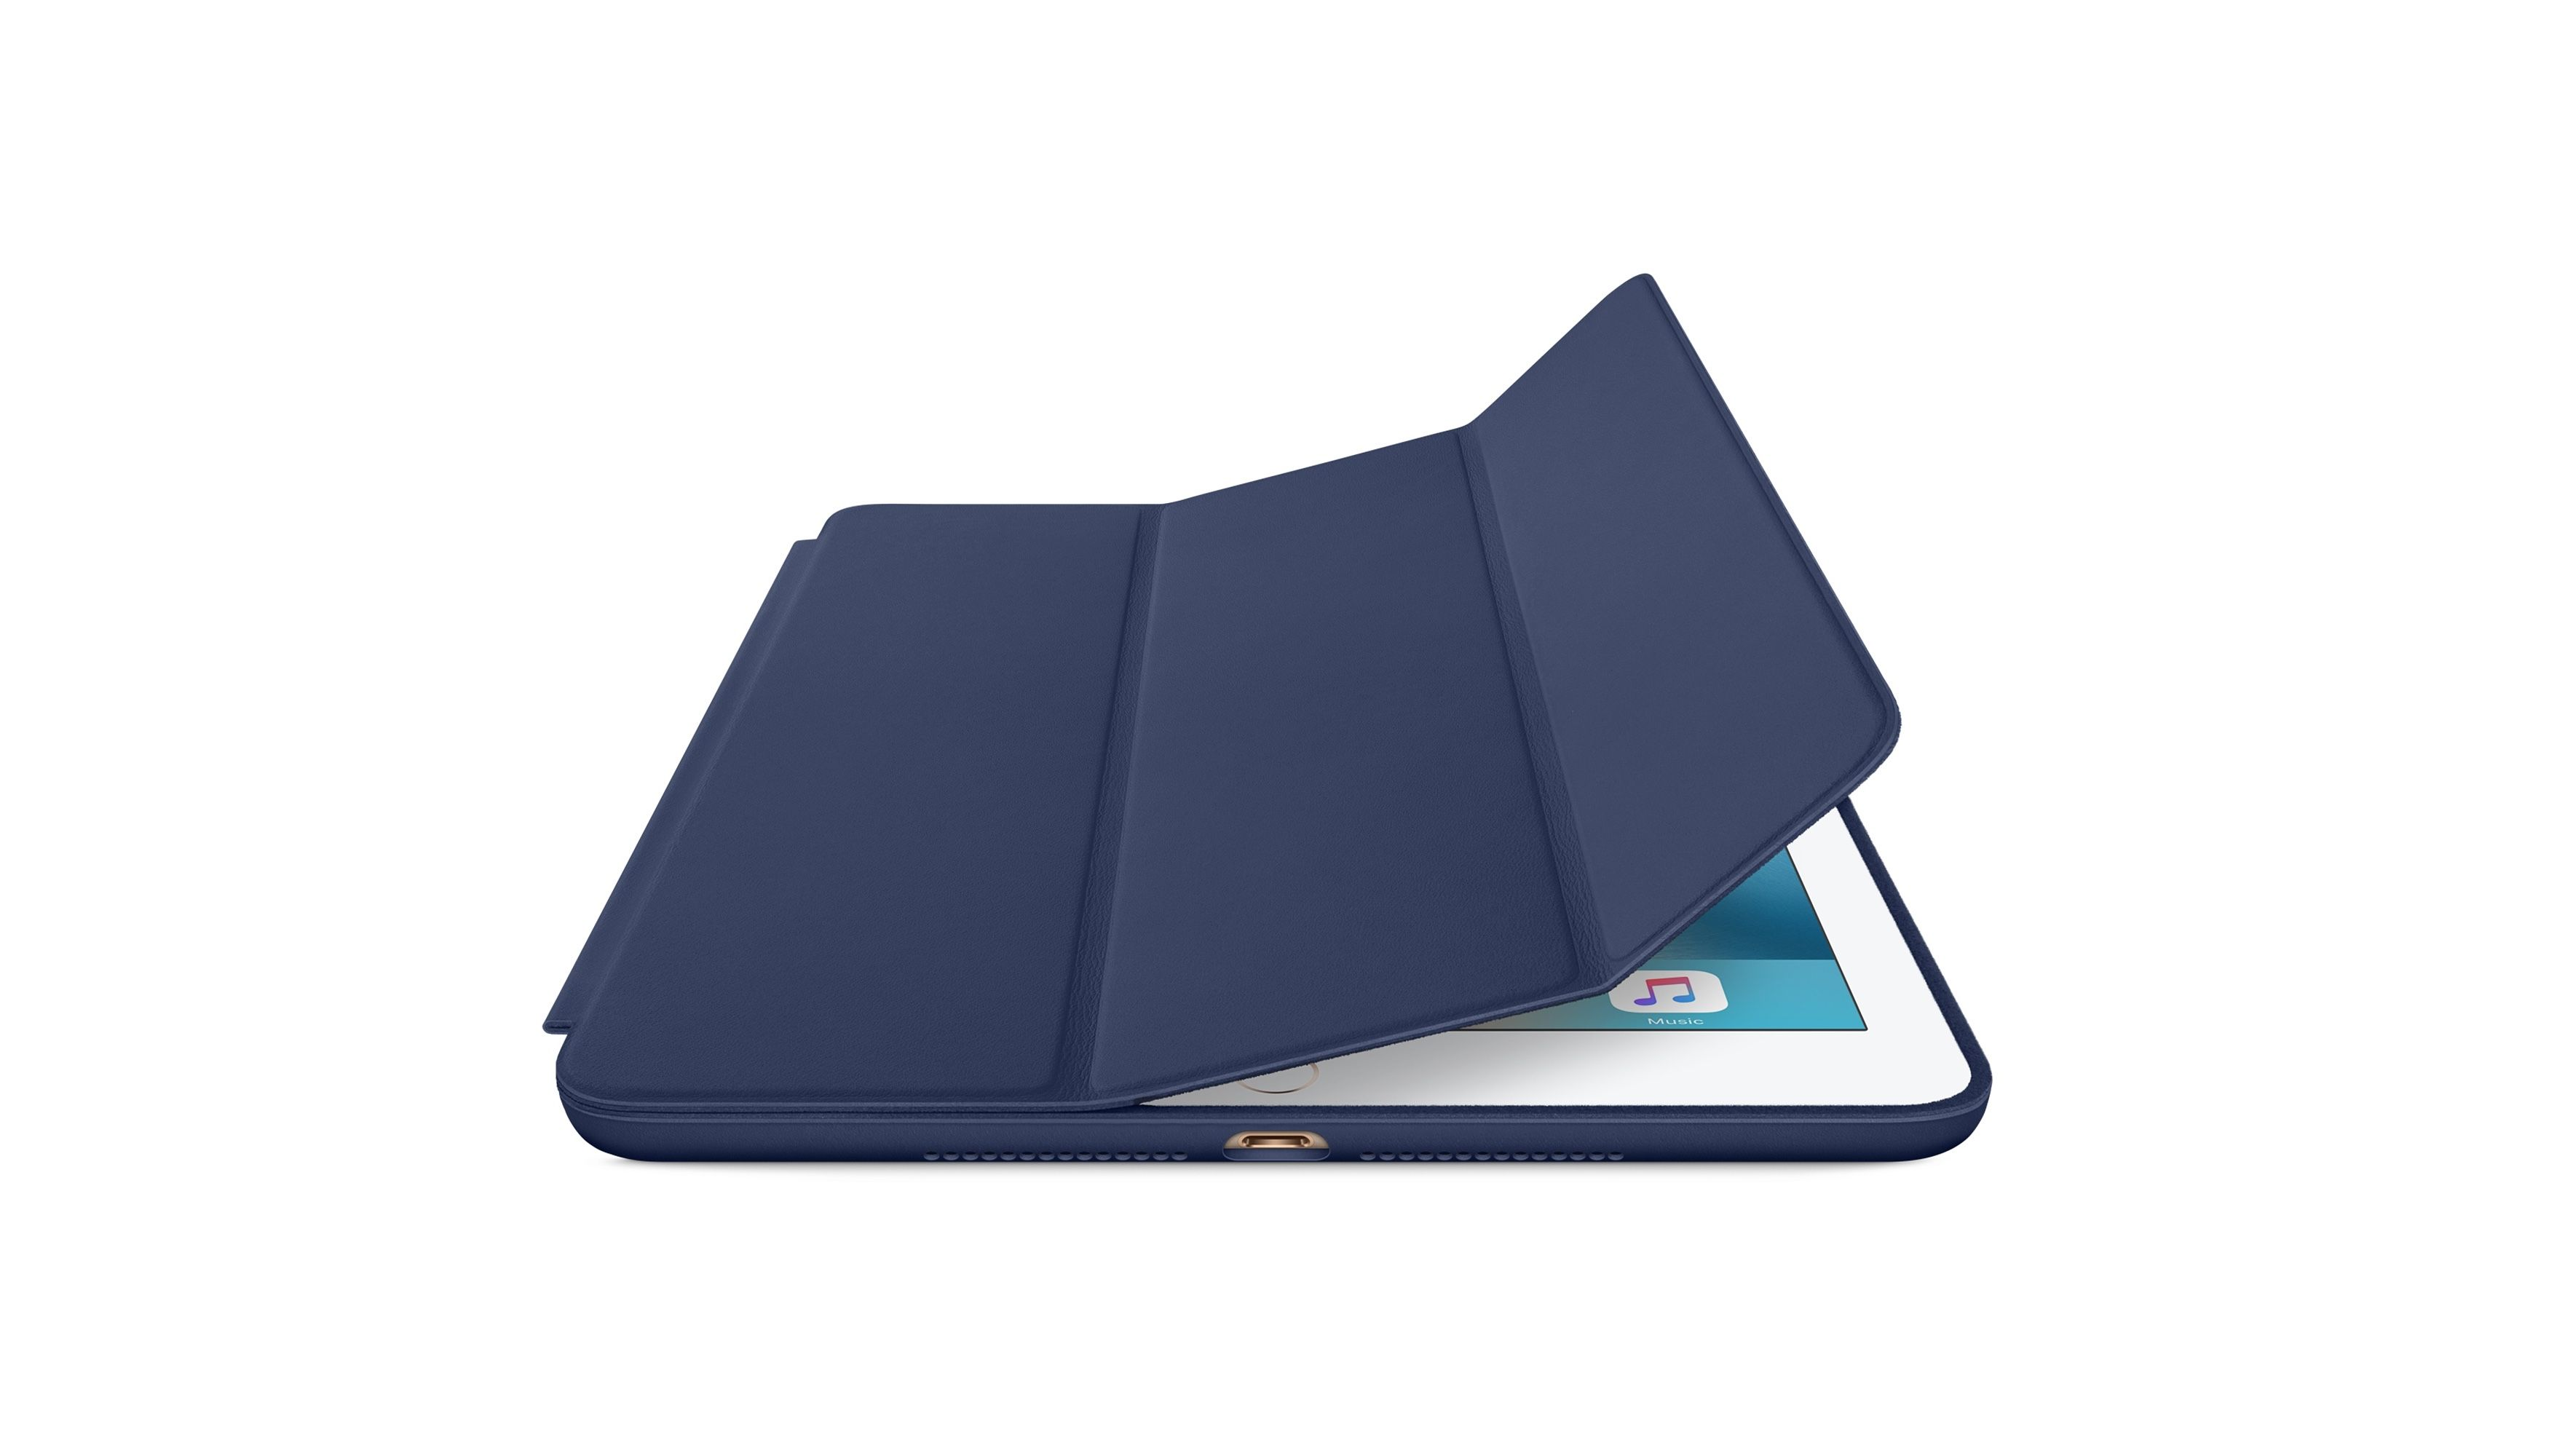 2018s Best Ipad Air 2 Cases And Covers 10 Stylish Lifeproof Apple Nuud